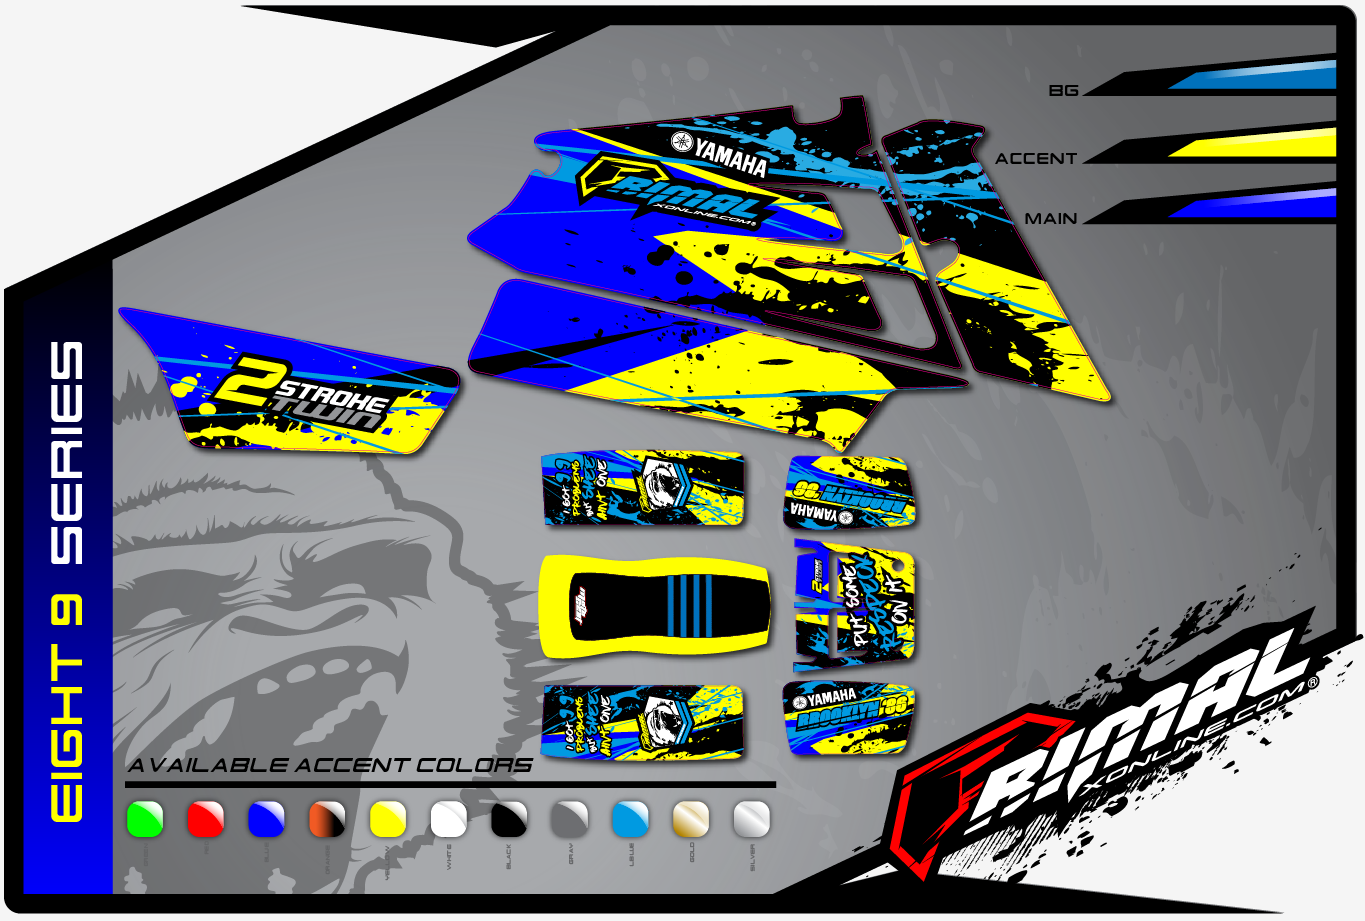 YAMAHA BANSHEE GRAPHICS PRIMAL X MX GRAPHICS BIKELIFE GRAPHICS DRZ (Eight 9 SERIES)